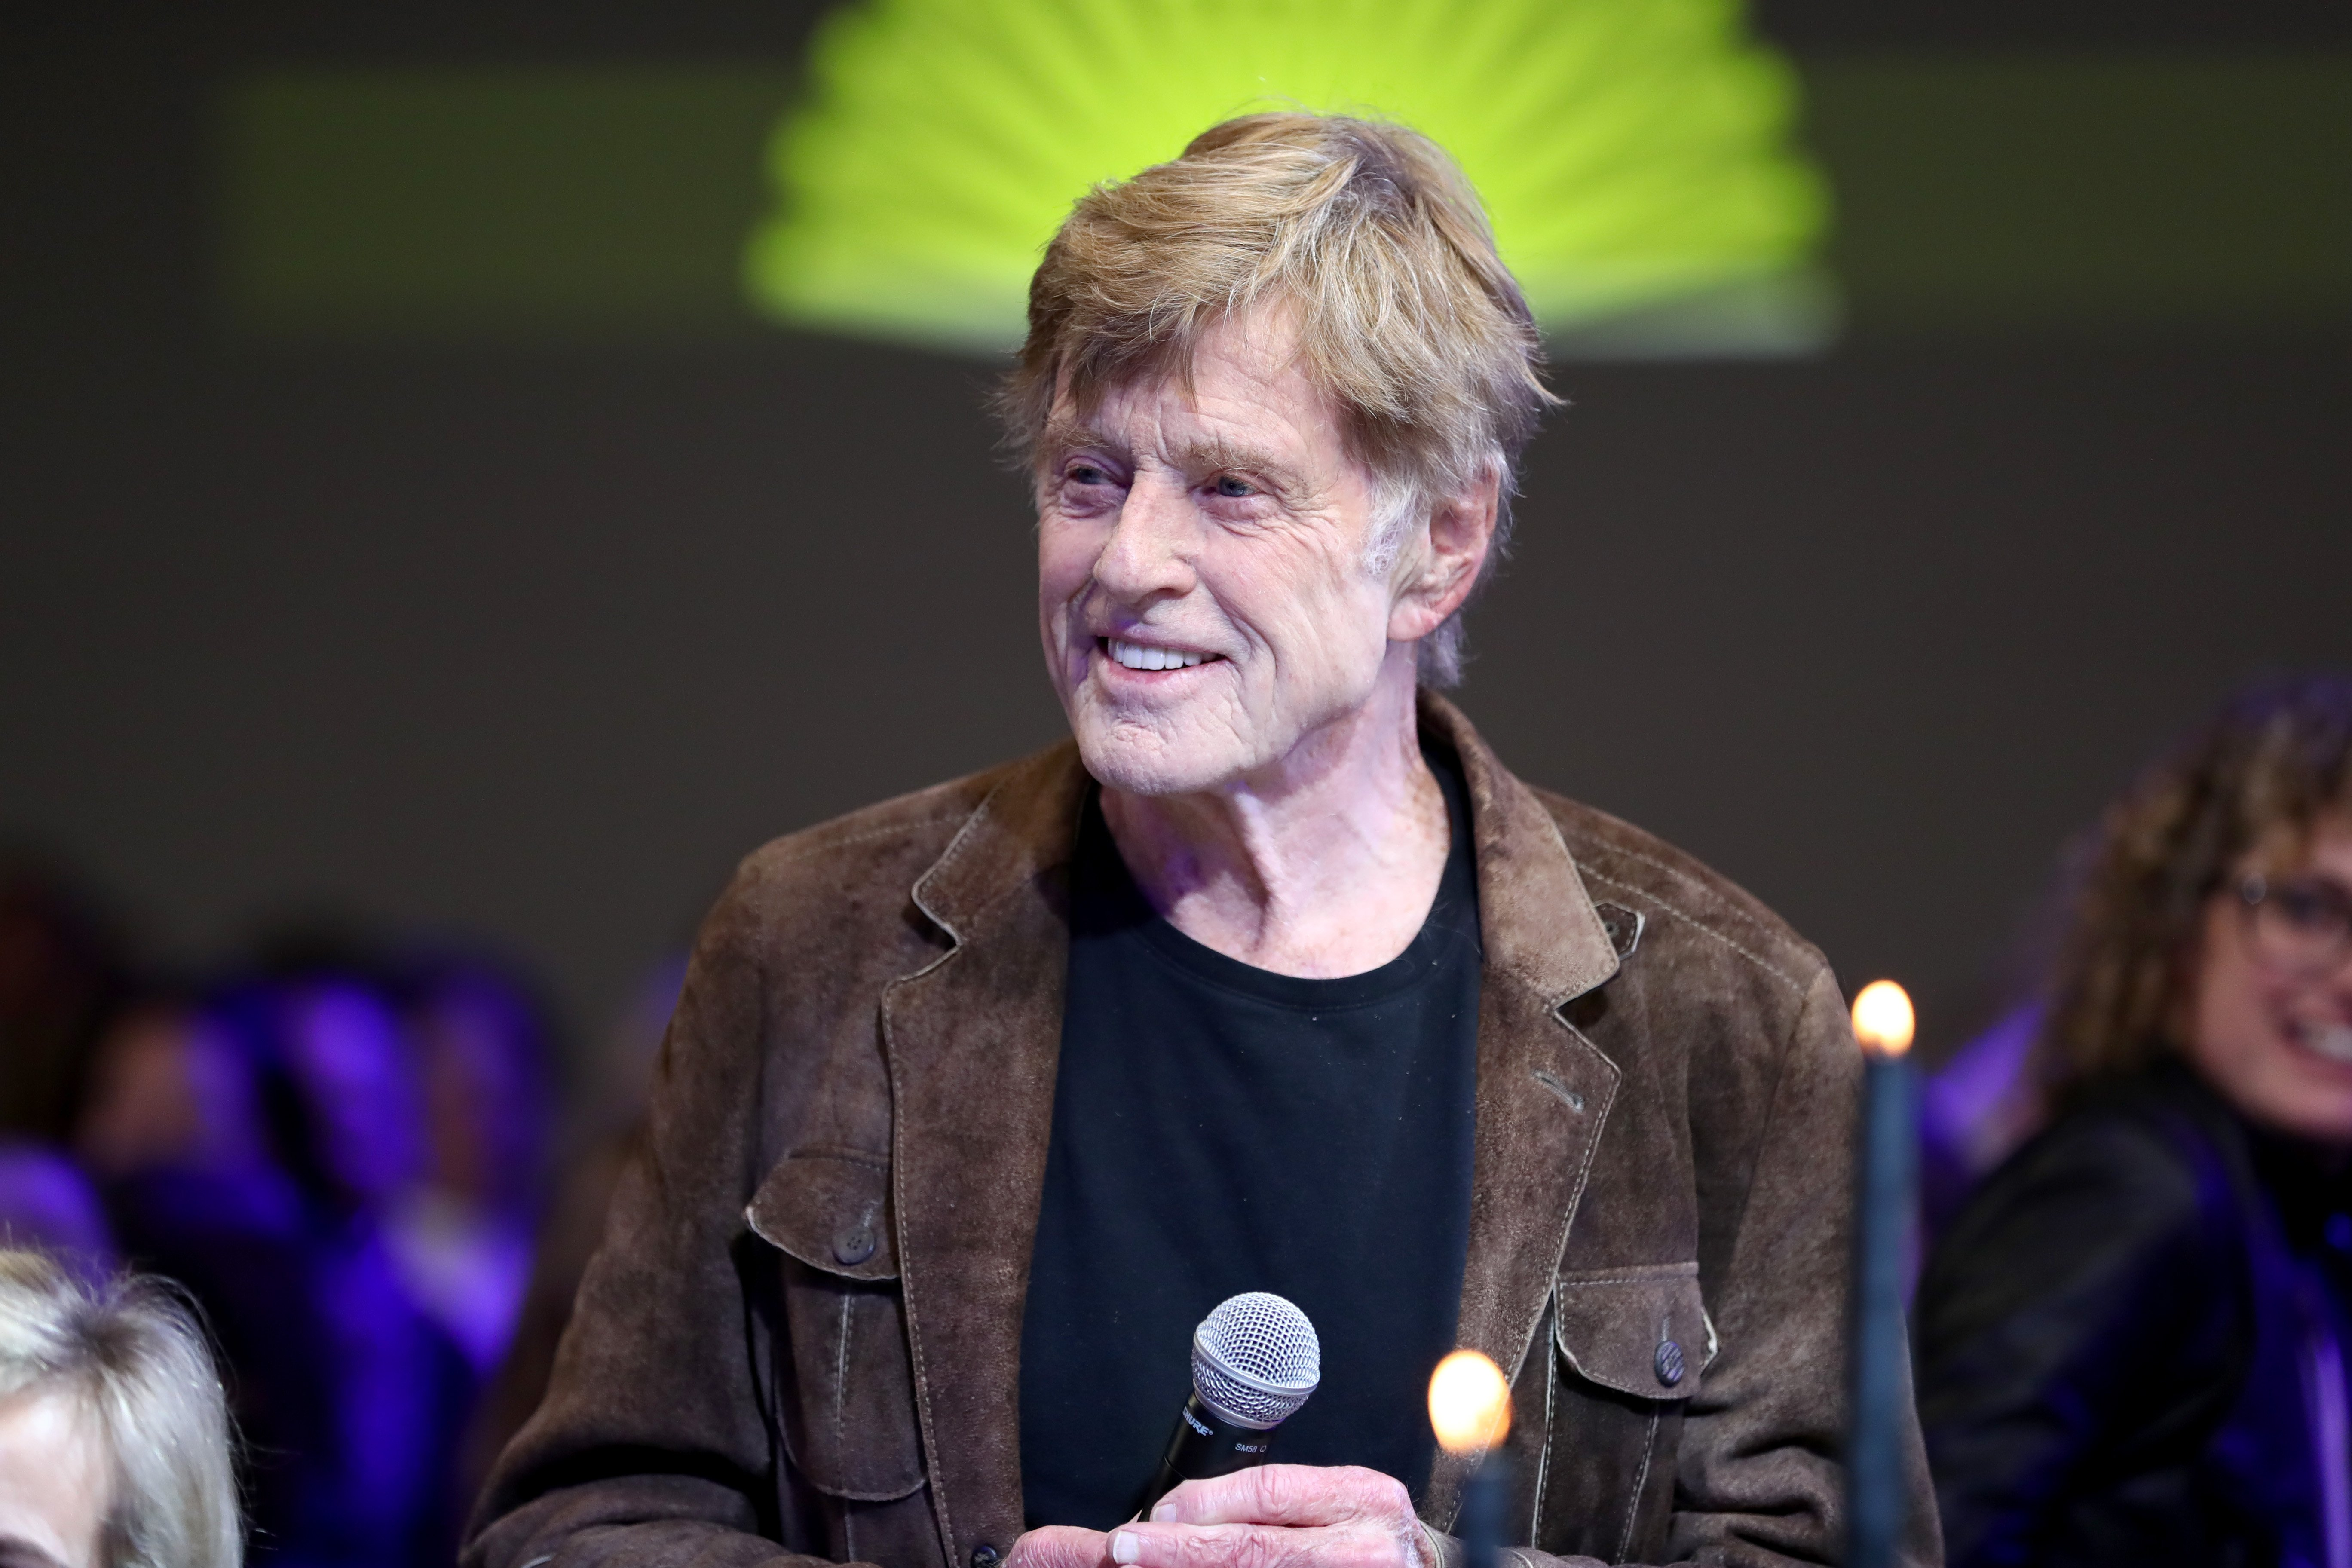 Image Credits: Getty Images / Rich Polk | Robert Redford attends Sundance Institute's 'An Artist at the Table Presented by IMDbPro' at the 2020 Sundance Film Festival on January 23, 2020 in Park City, Utah.